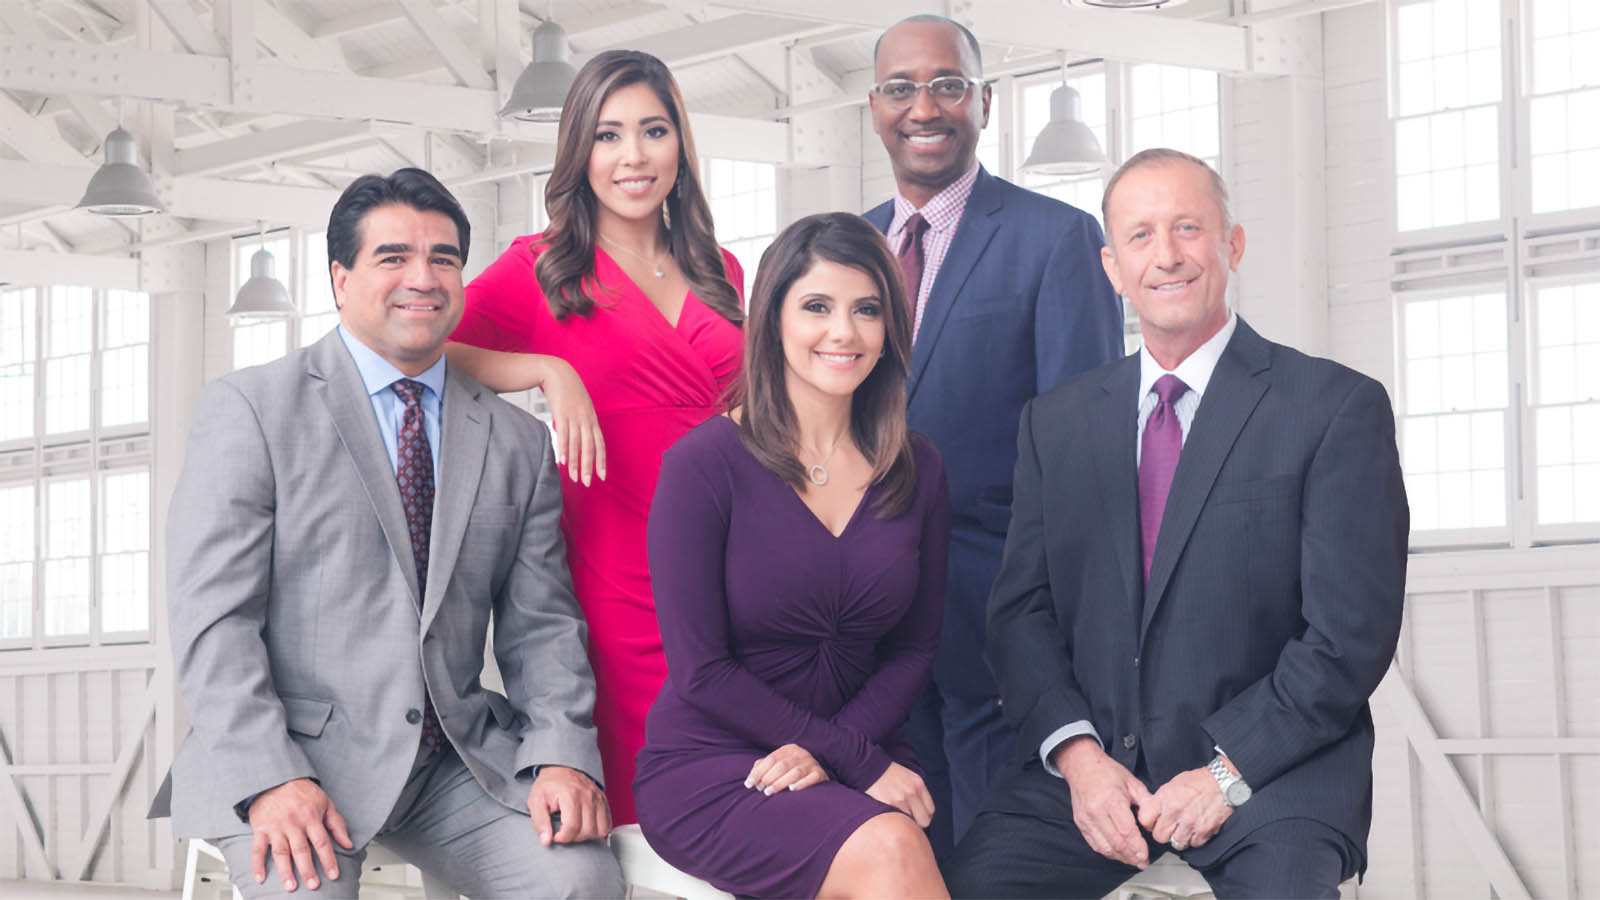 KENS 5 News eyewitness news team